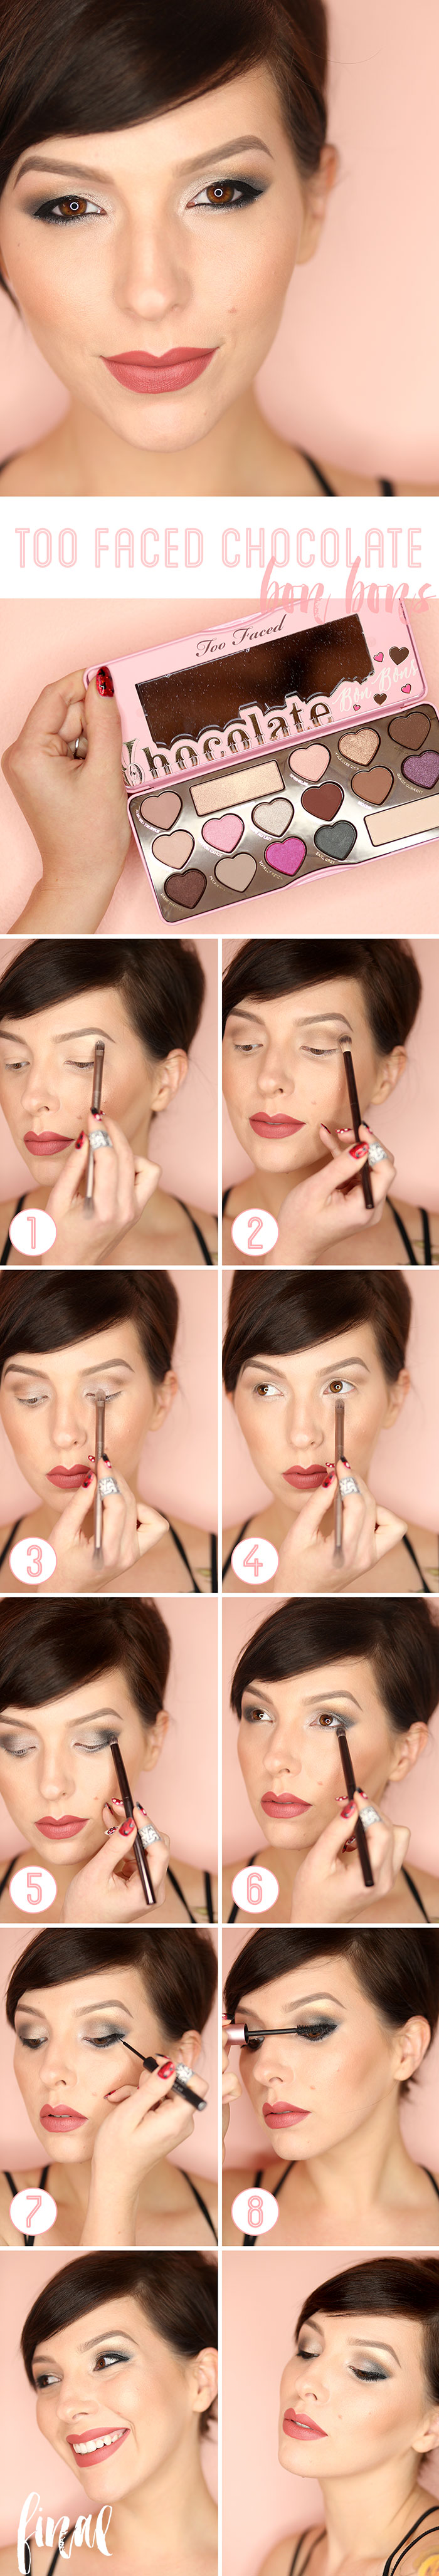 too-faced-chocolate-bon-bons-eye-makeup-tutorial